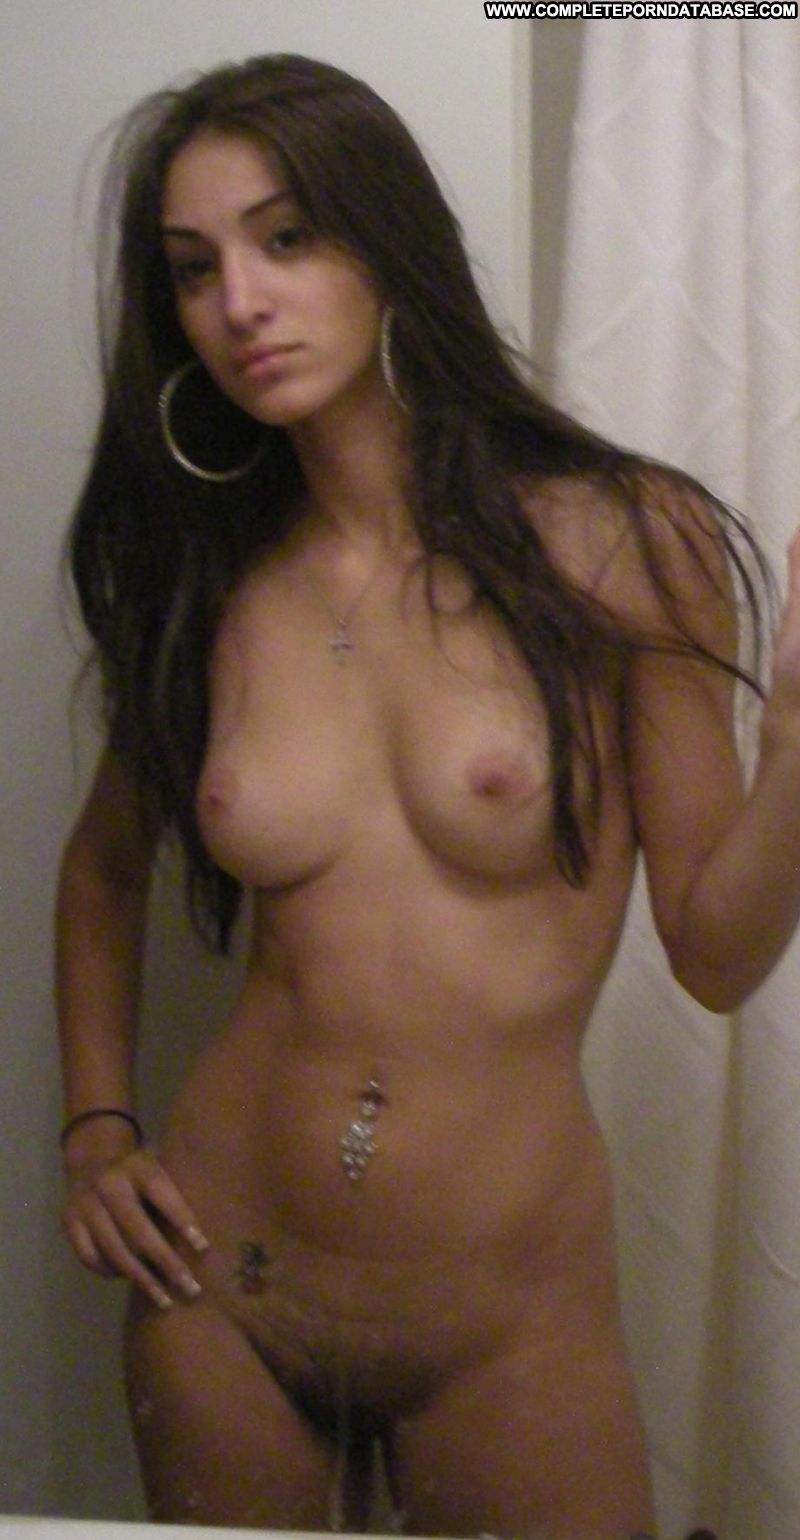 Several Amateurs Self Shot Amateur Softcore Arab Nude